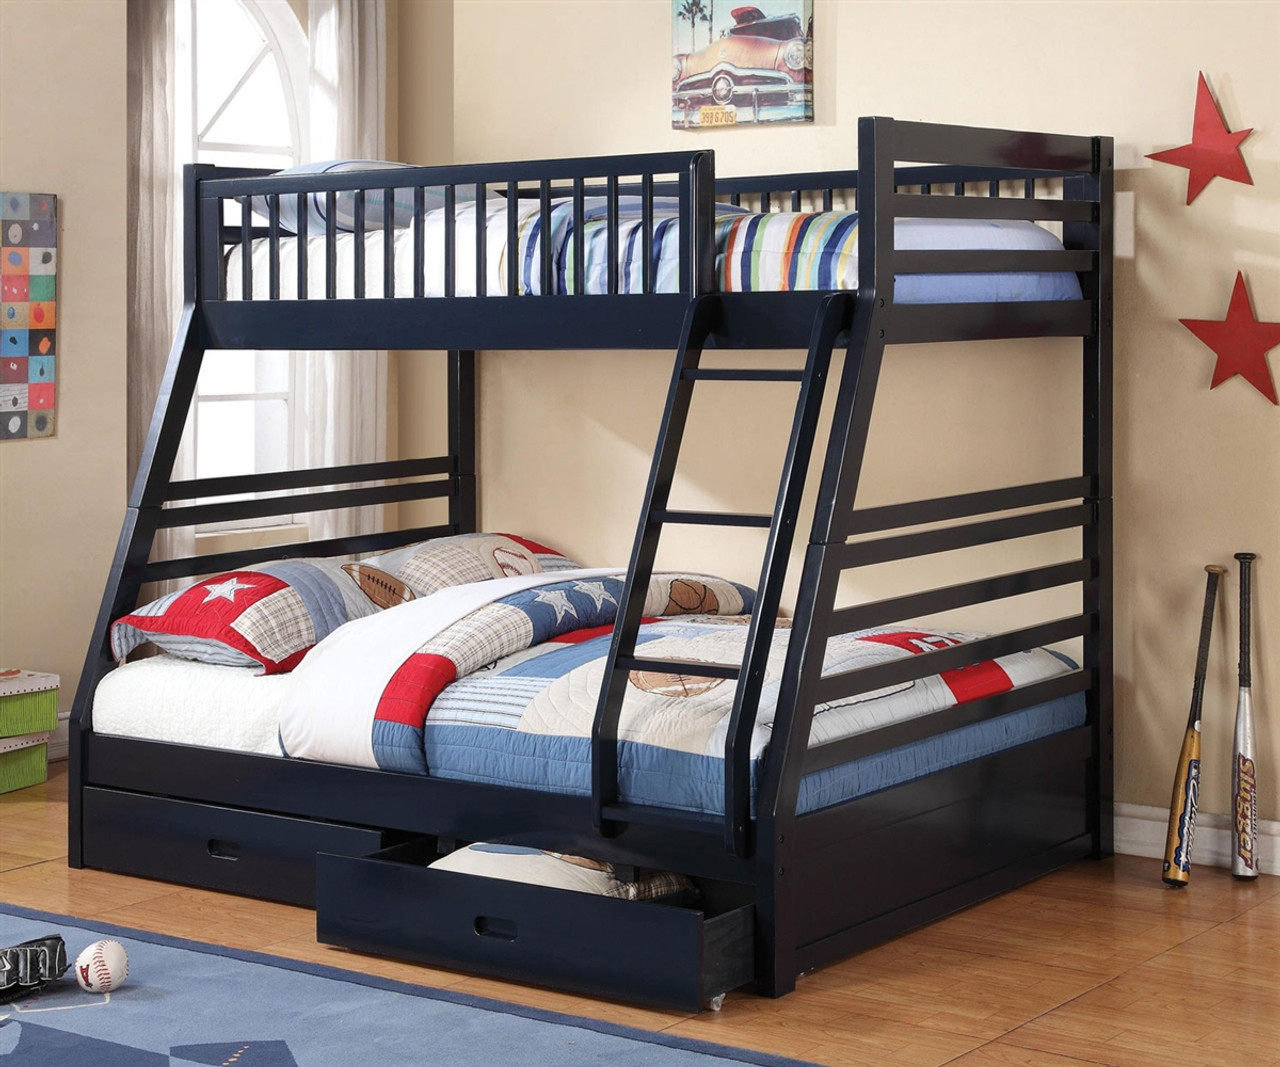 Coaster Furniture 460181 Twin Over Full Navy Blue Bunk Bed Full Size Bunkbed With Drawers Twin Over Full Blue Bunkbed With Storage Drawers At Kids Furniture Warehouse